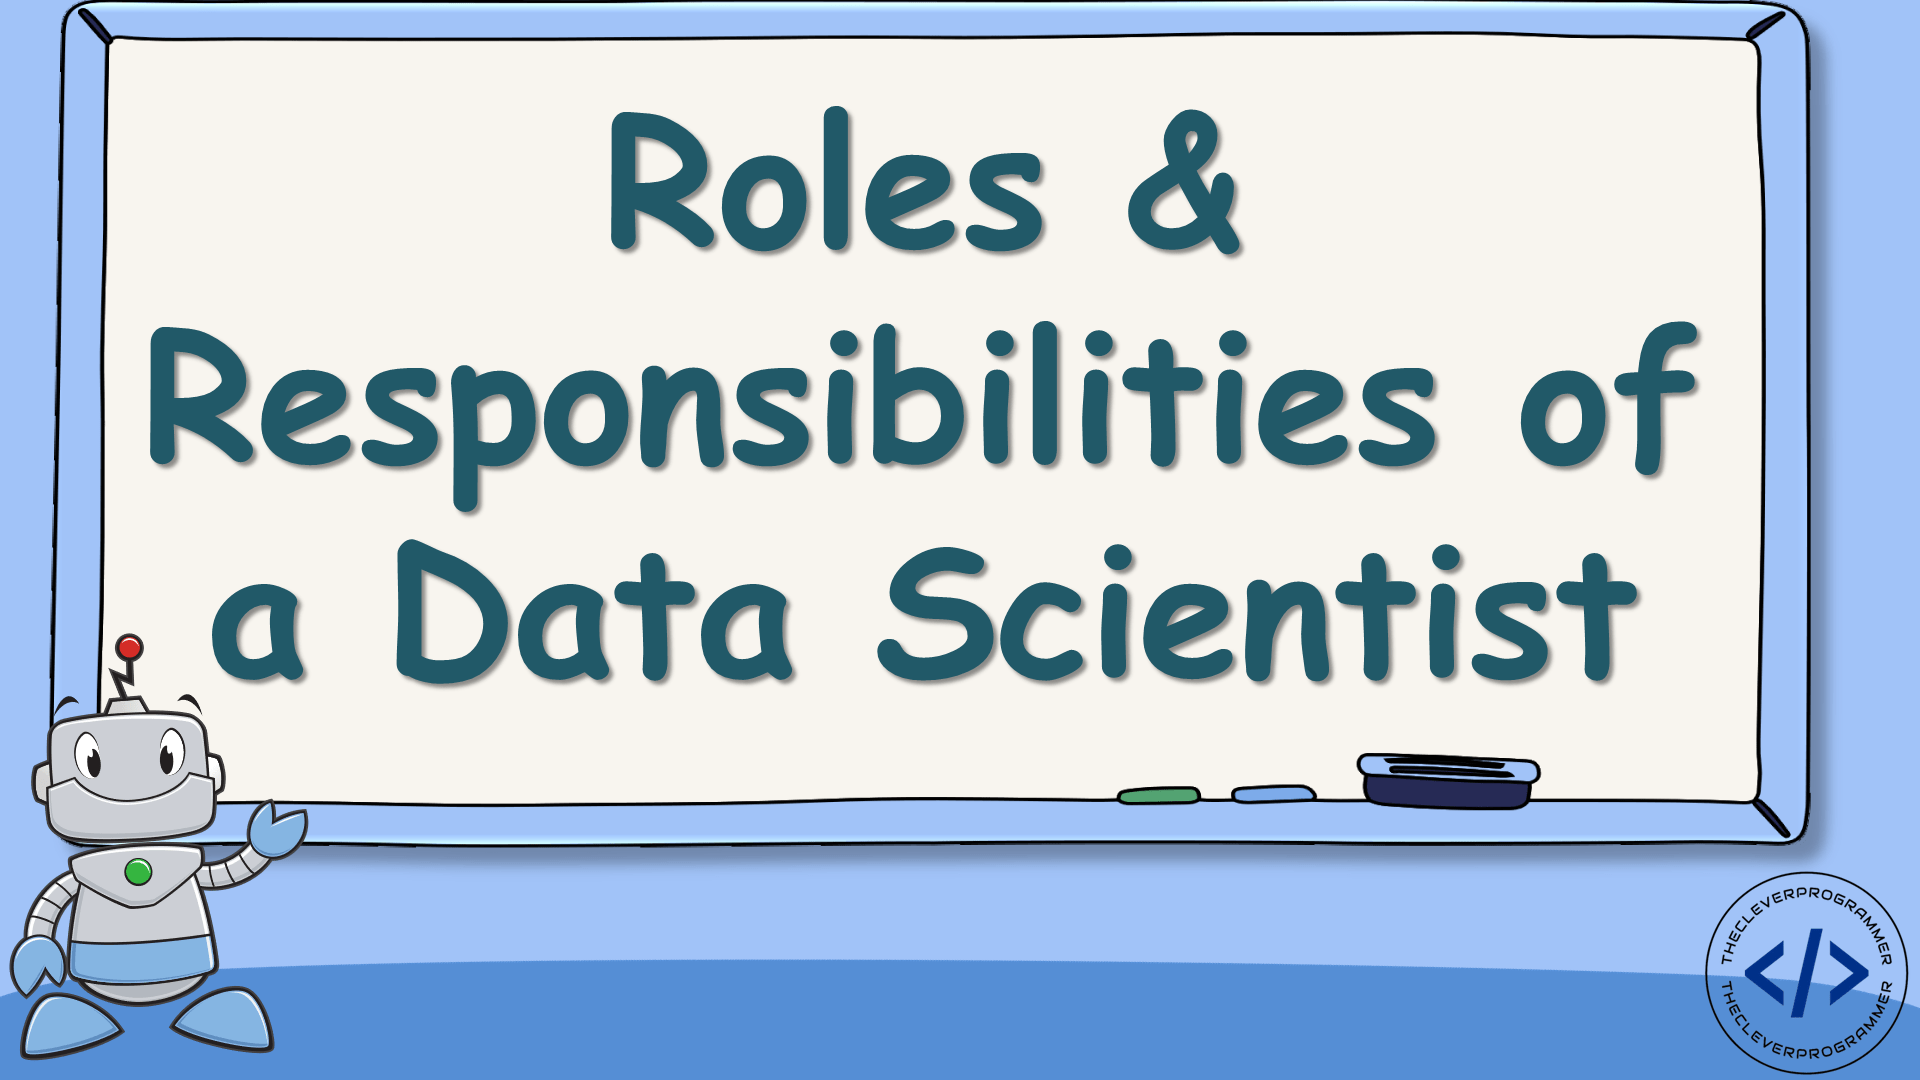 Roles and Responsibilities of a Data Scientist